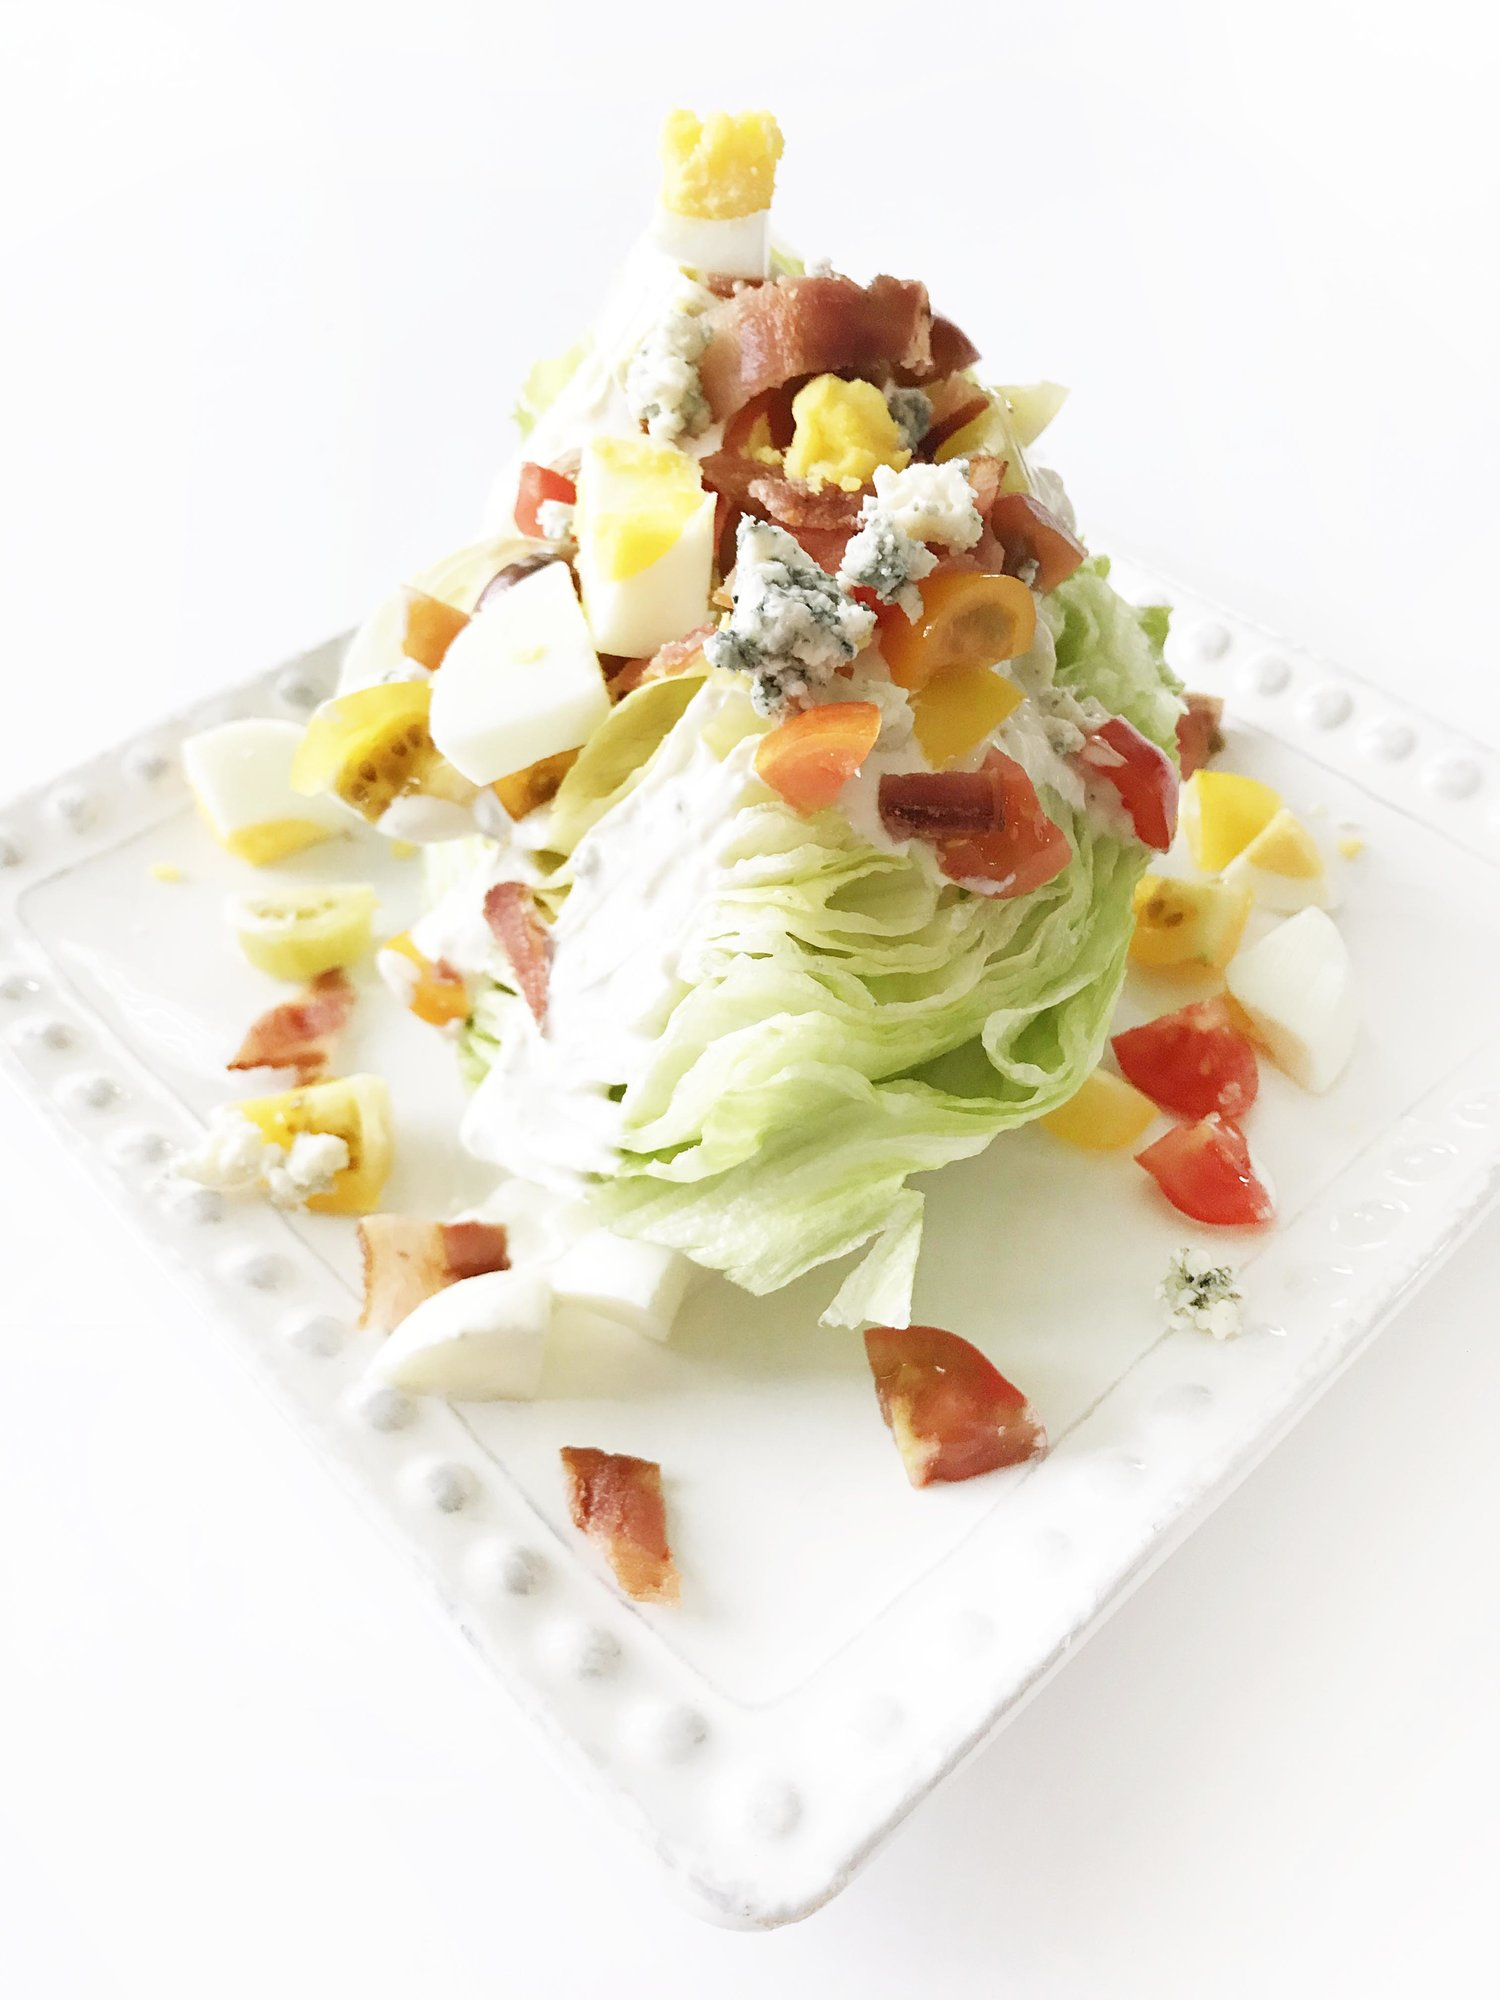 Loaded Wedge Salad